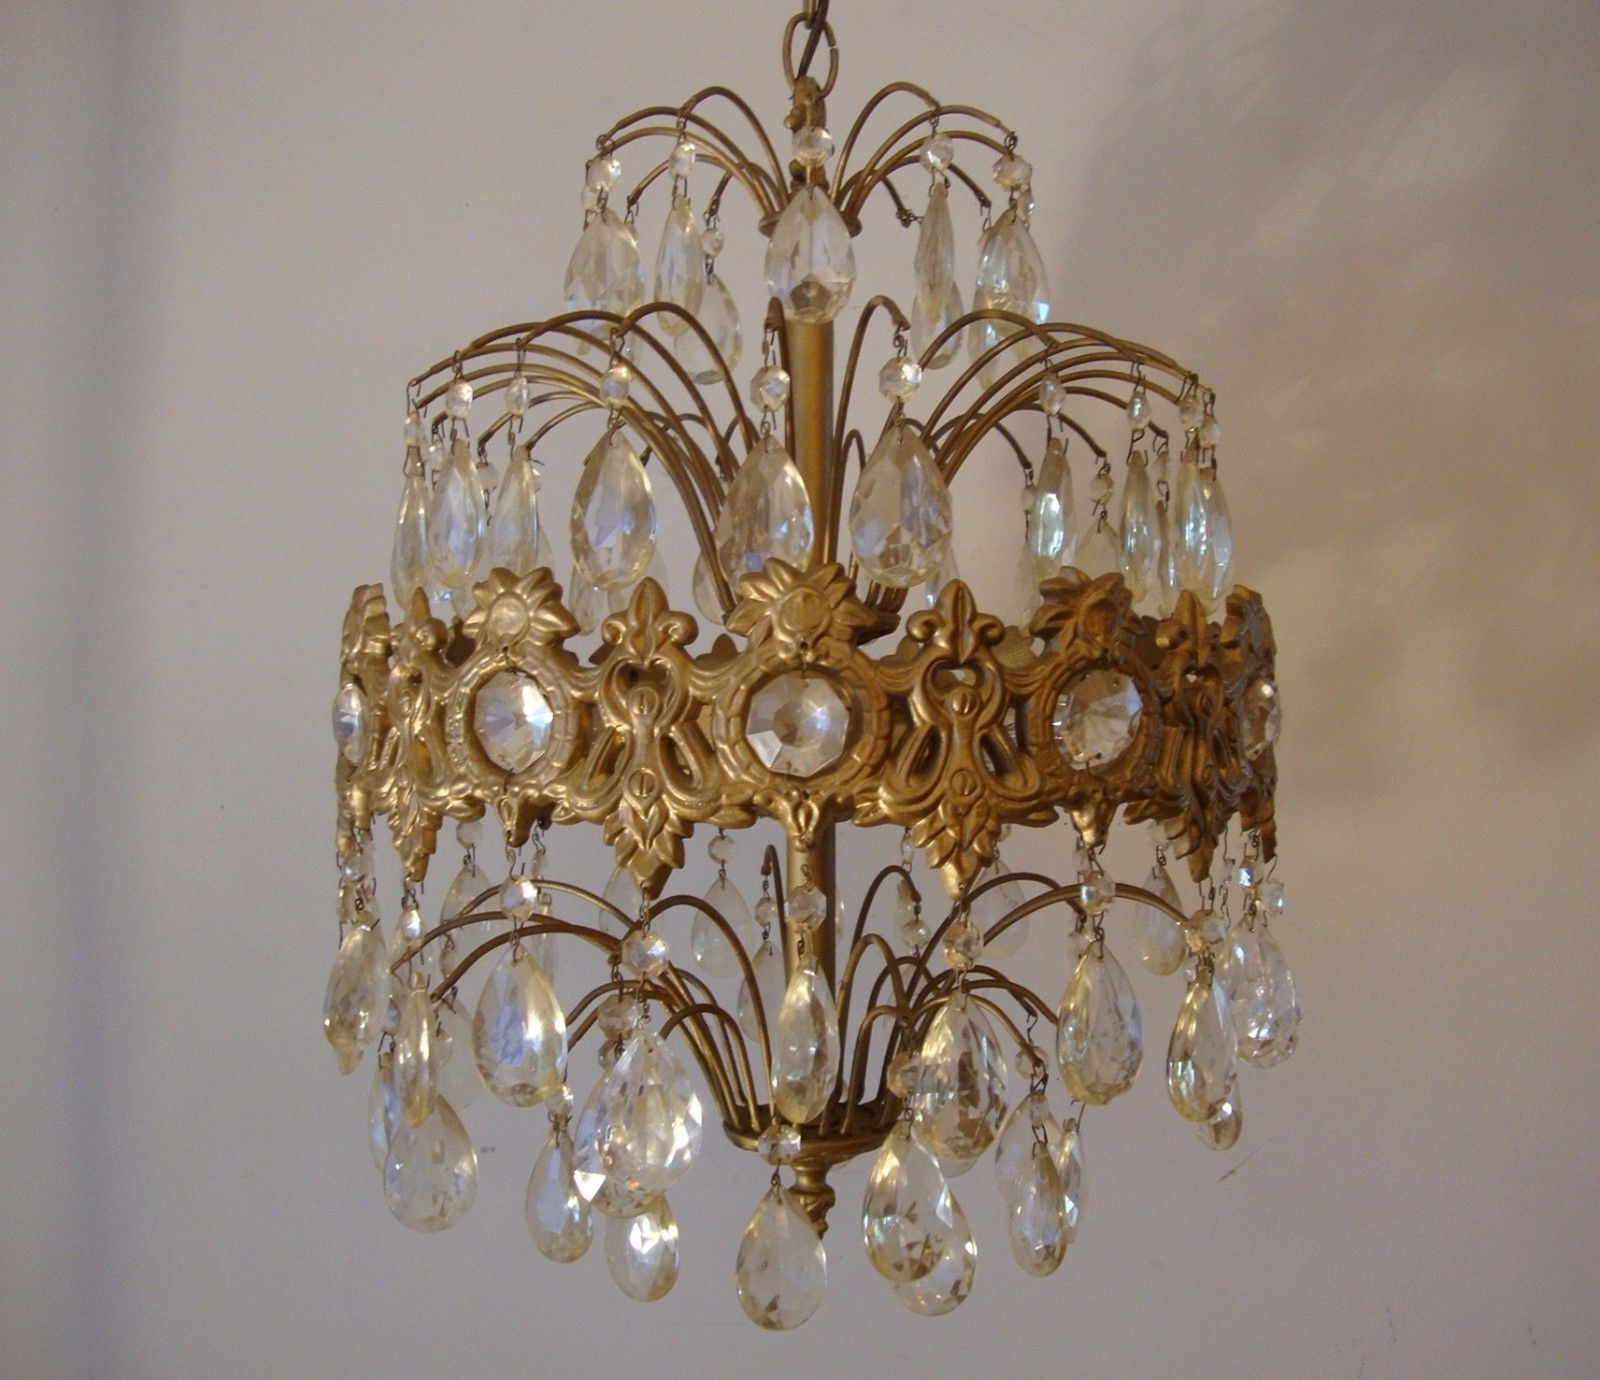 Favorite Waterfall Chandeliers With Regard To Vintage Crystal Prism Waterfall Chandelier – 6 Tier 6 Lights (View 11 of 20)